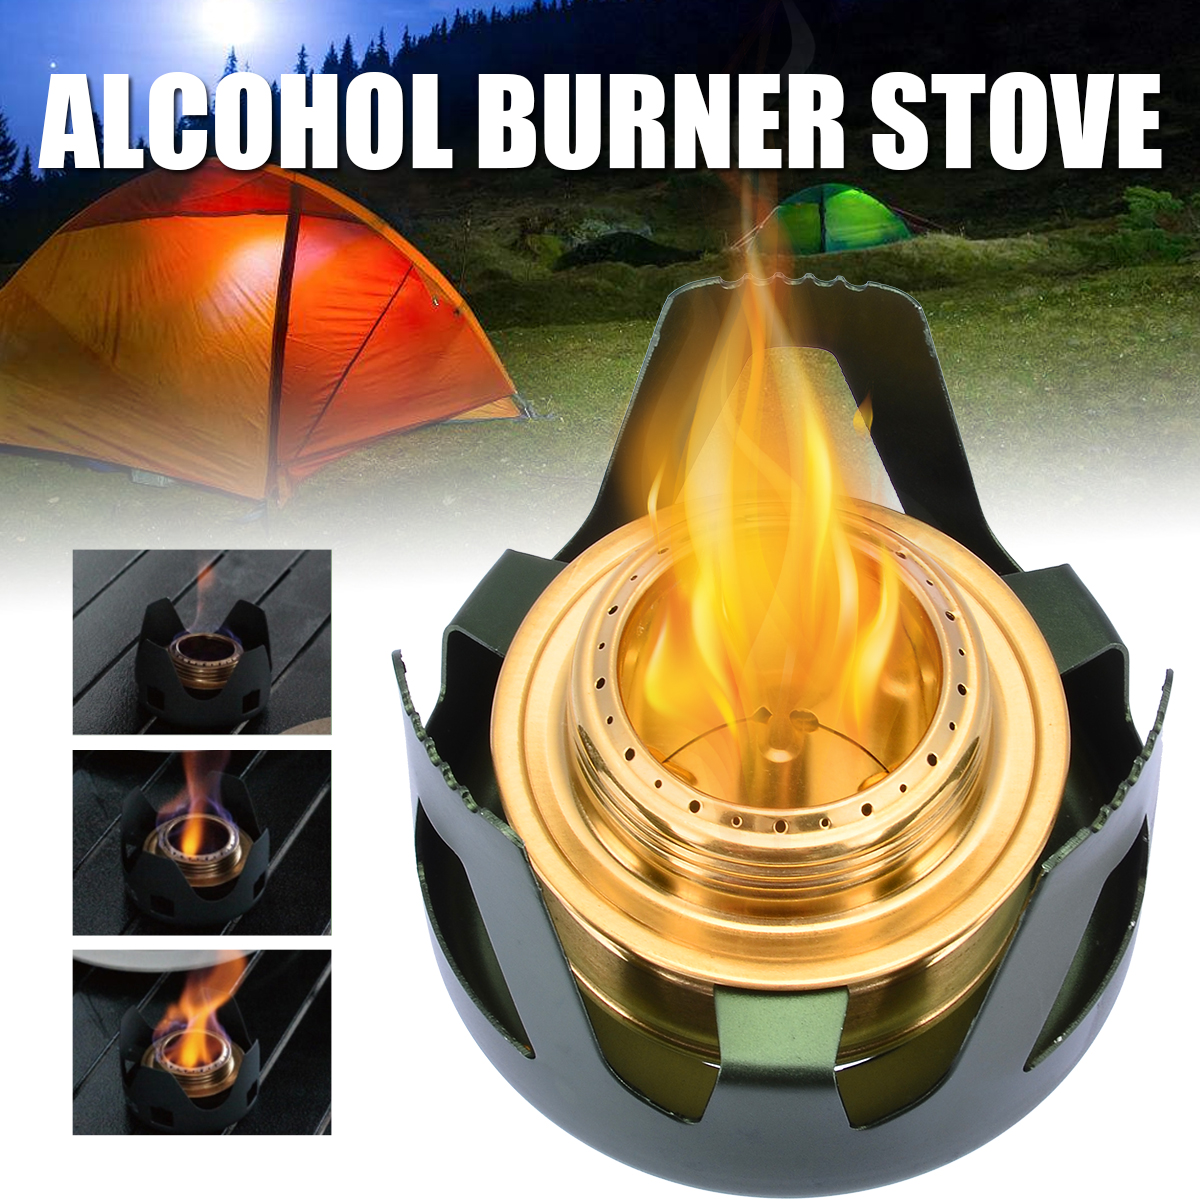 Mayitr Portable Mini Spirit Burner Outdoor Alcohol Stove Barbecue Grill for  BBQ Hiking Camping Tool